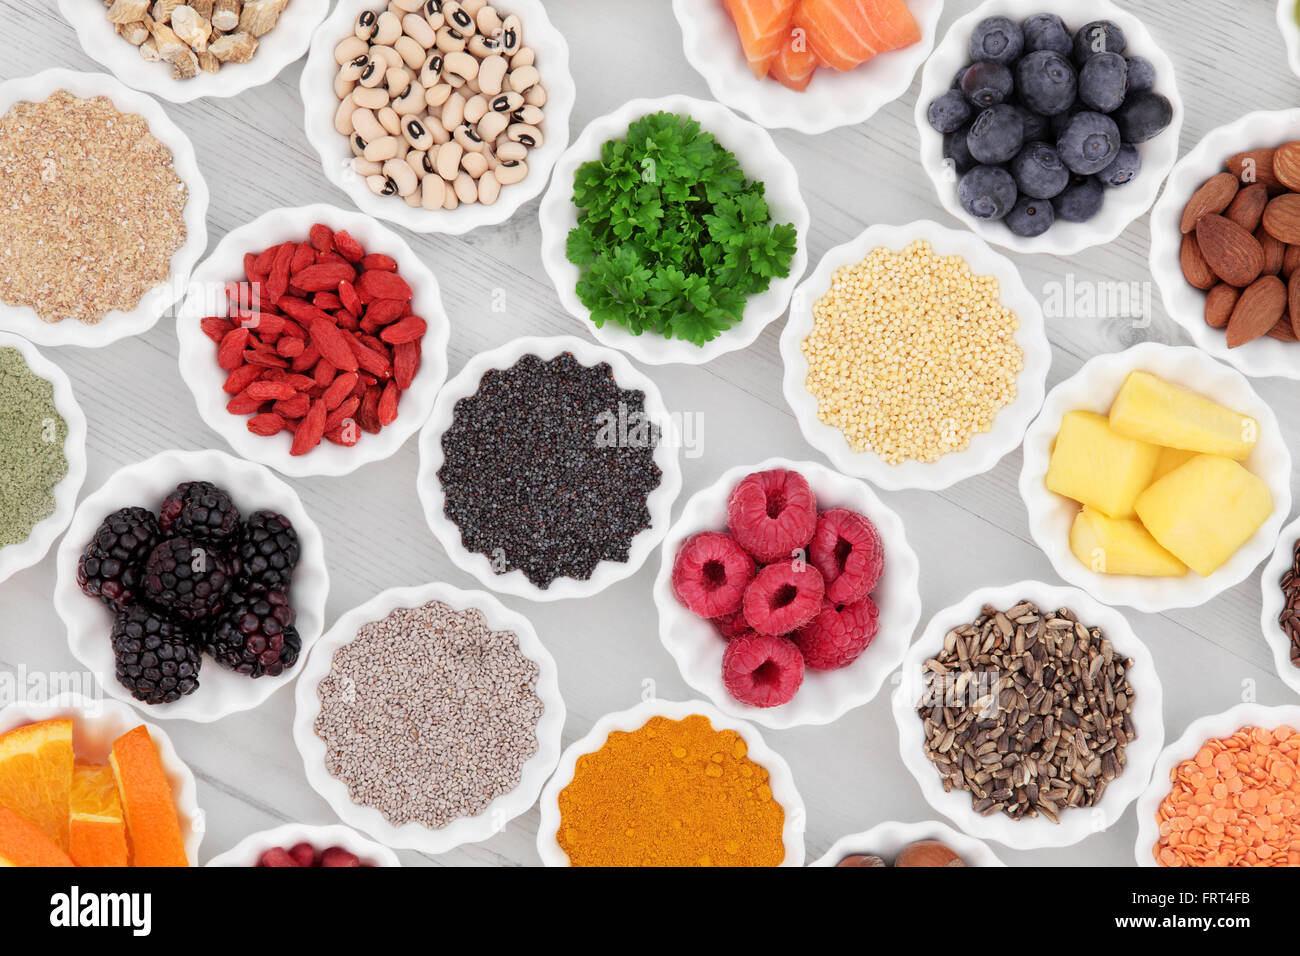 Super food collection in porcelain crinkle bowls over distressed wooden background. High in vitamins and antioxidants. - Stock Image